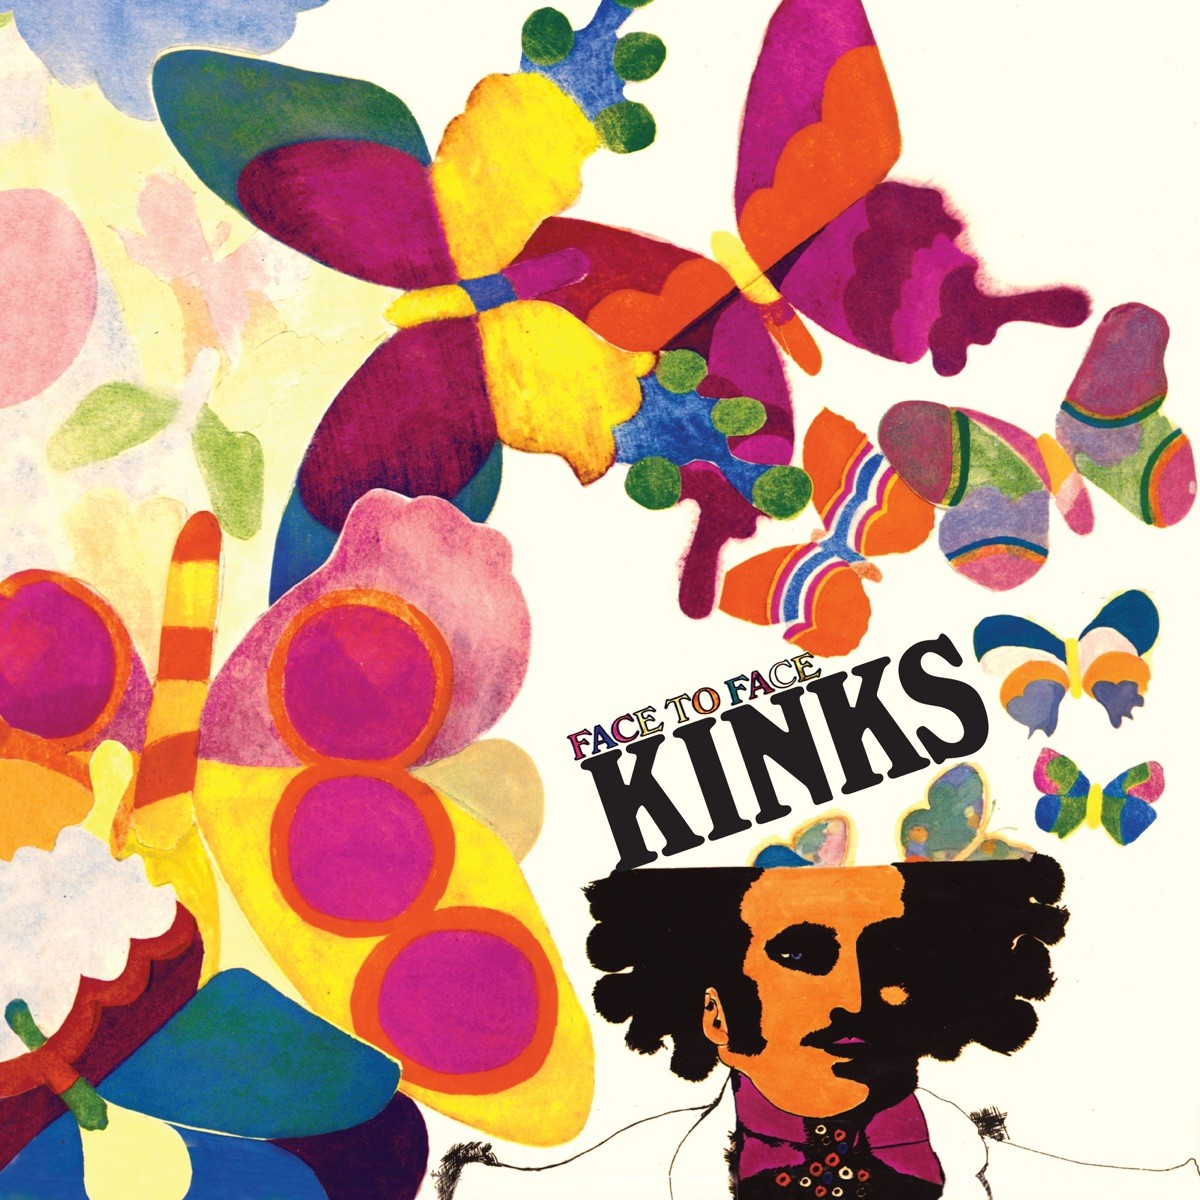 The Kinks - Face to Face VINYL - 541493963981